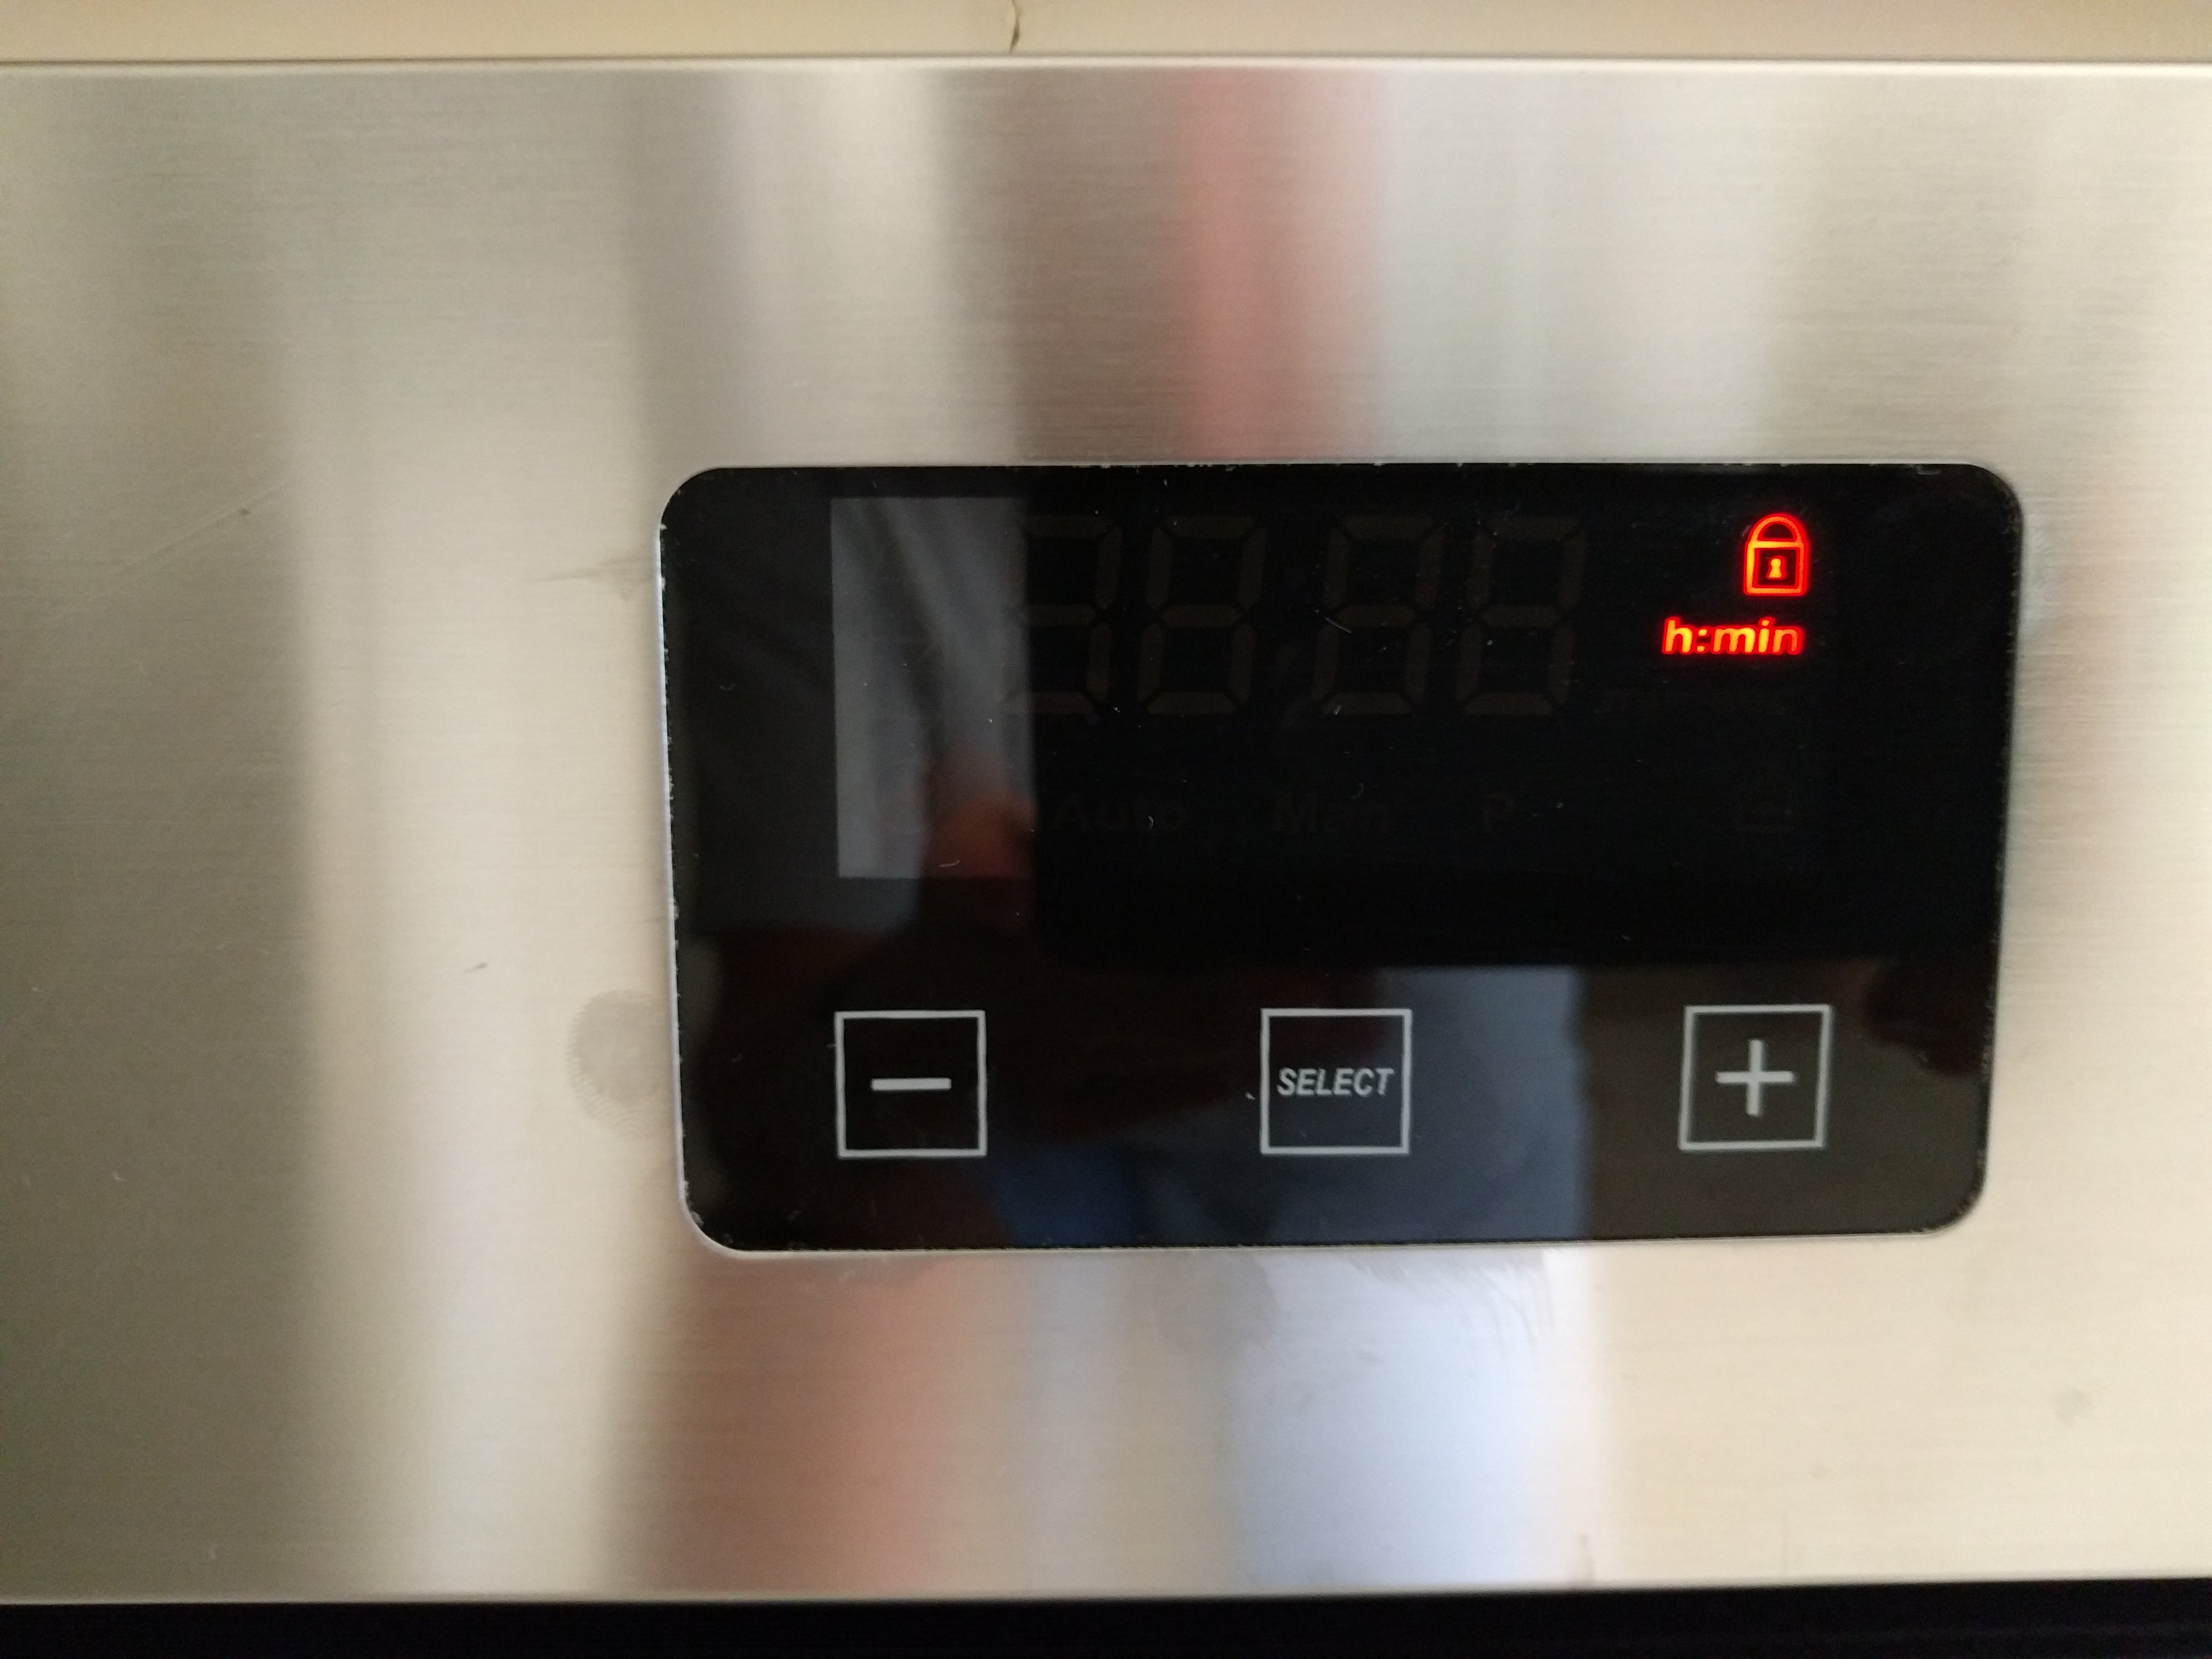 I Have A Nardi Fex07559 Oven The Child Lock Has Appeared And Even